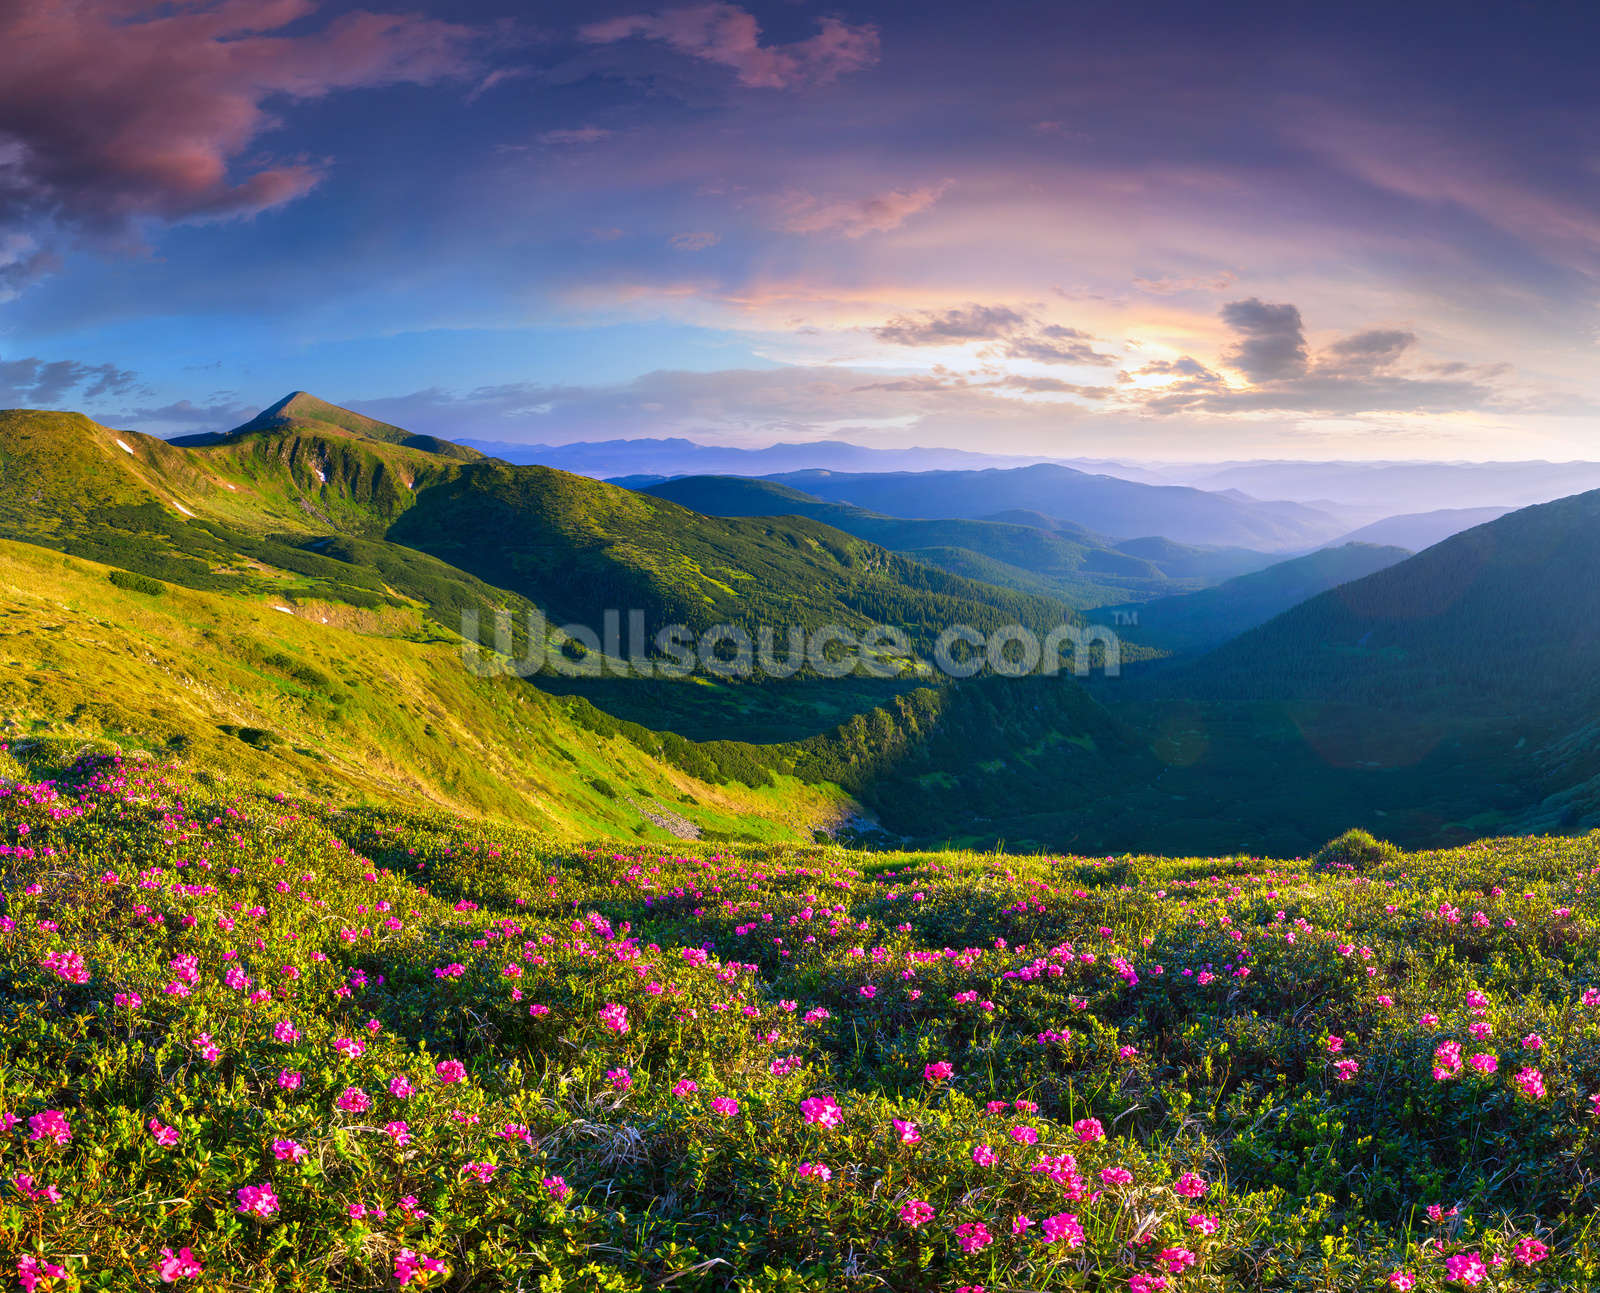 Wonderful Wallpaper Mountain Mural - 51505672magic-pink-rhododendron-flowers-the-mountains-summer-sunrise  Best Photo Reference_707989.jpg